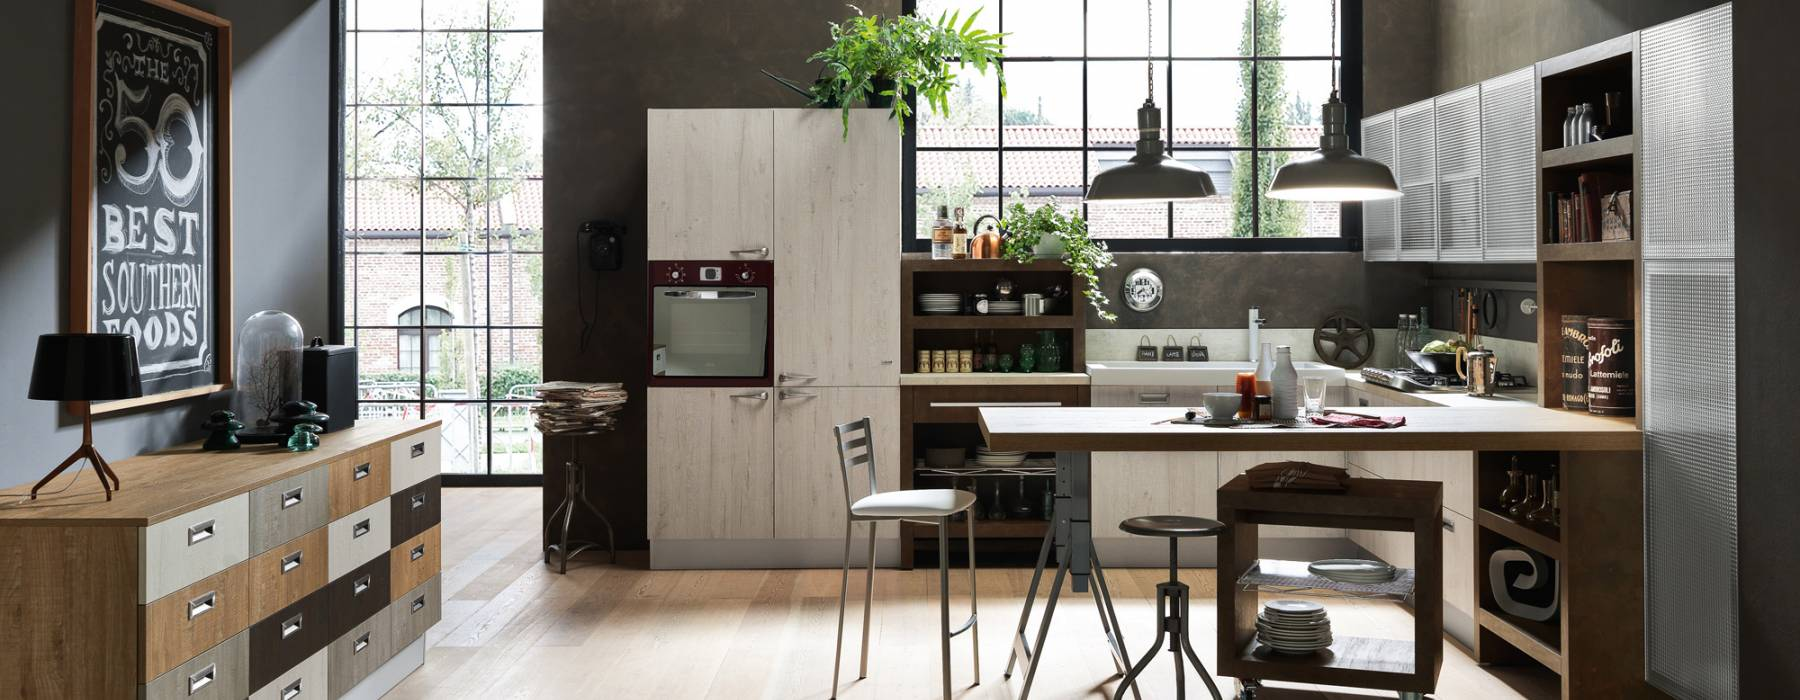 Cucina Moderna Con Tavolo Penisola Pavia Pictures to pin on Pinterest